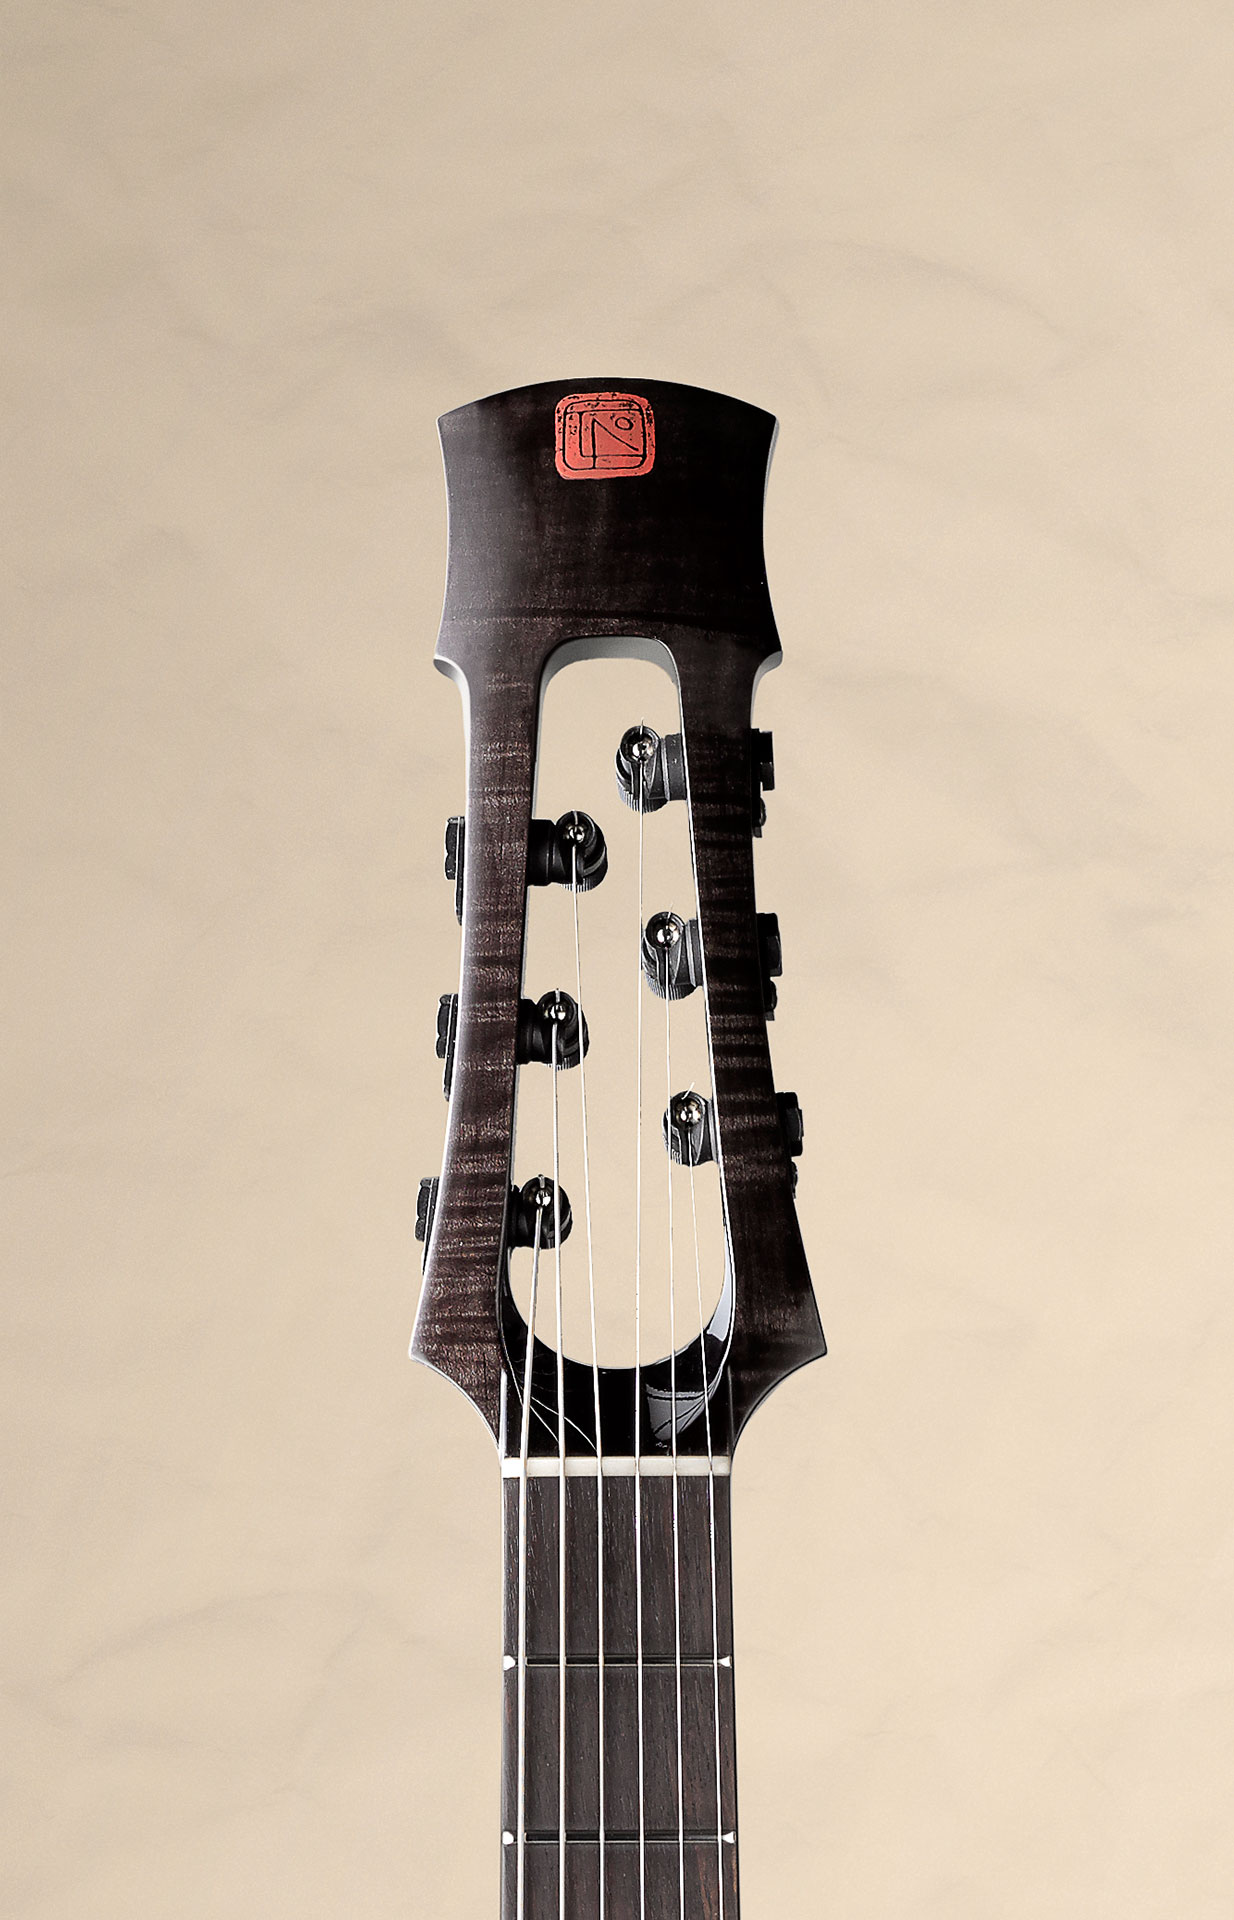 tao guitars tao guitar the gear page. Black Bedroom Furniture Sets. Home Design Ideas